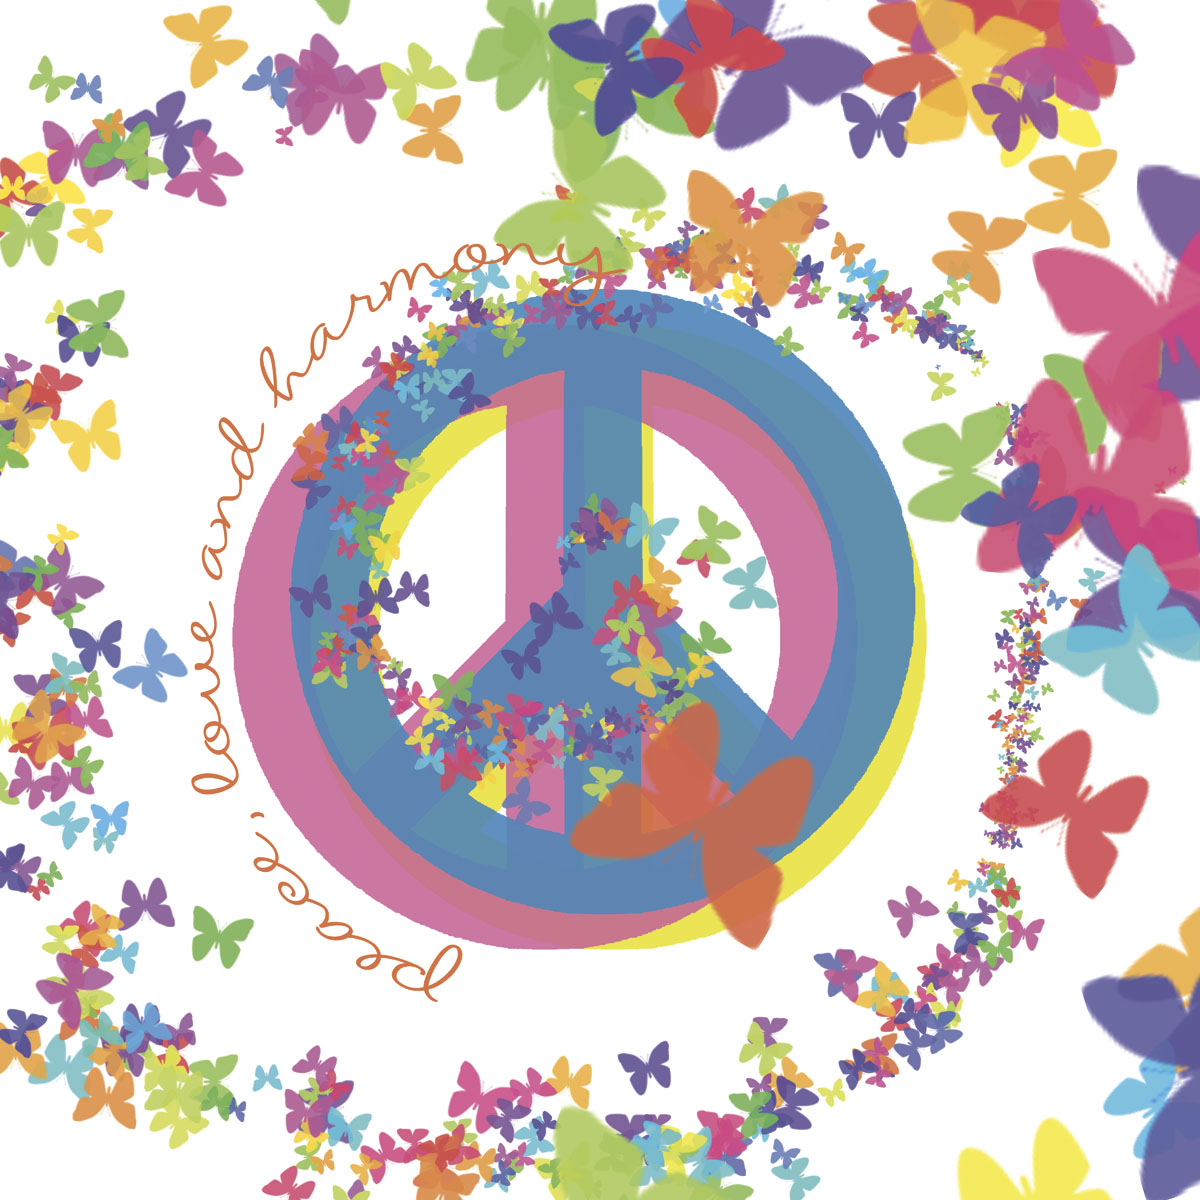 Peace, Love, and Harmony